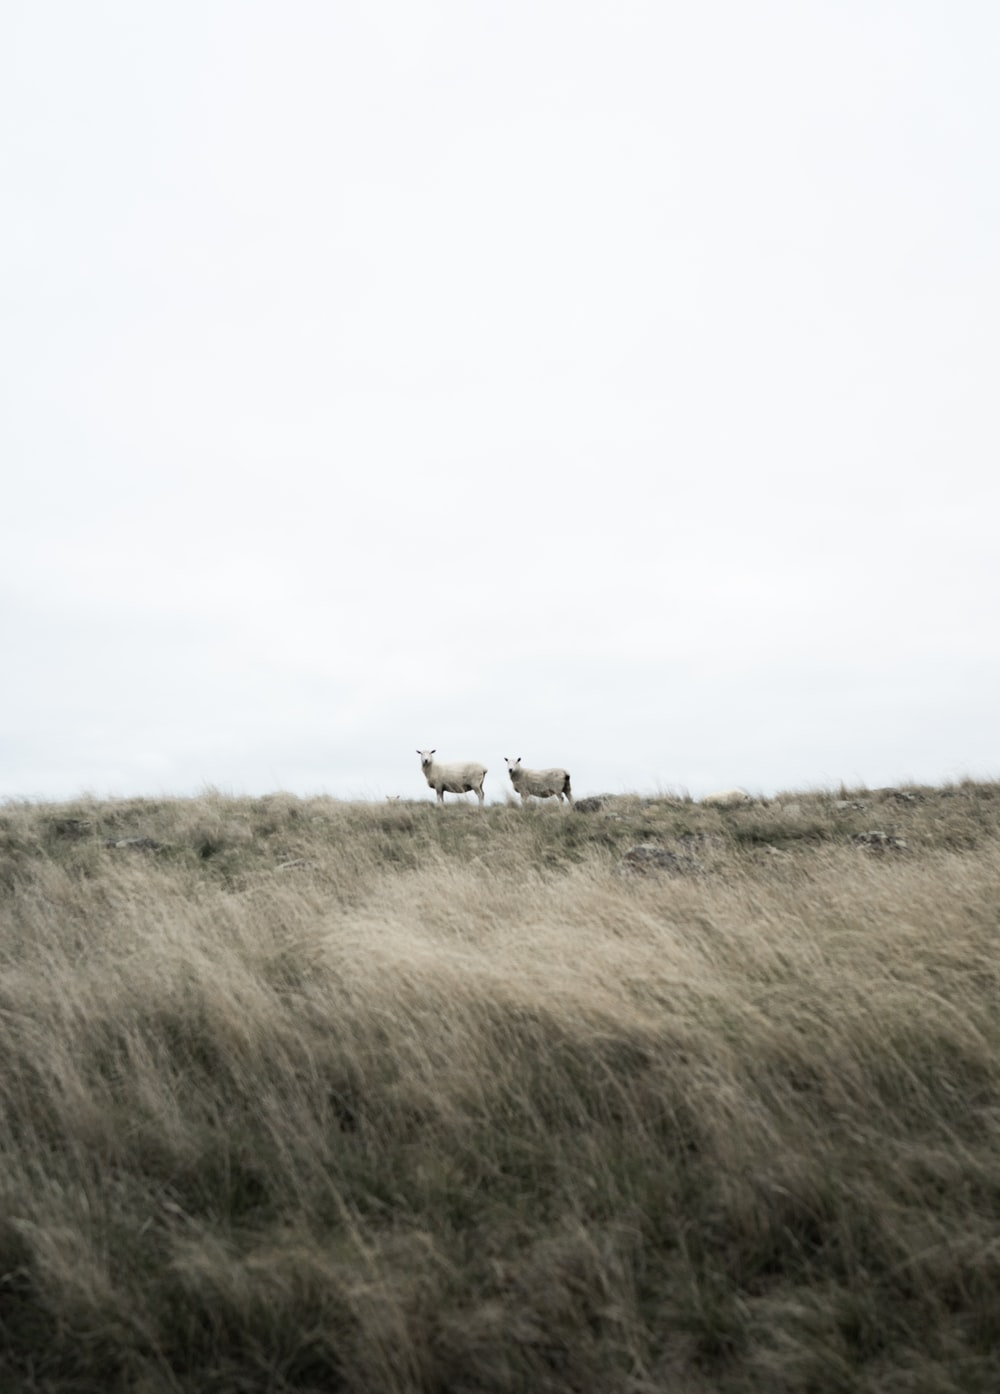 two white goats standing